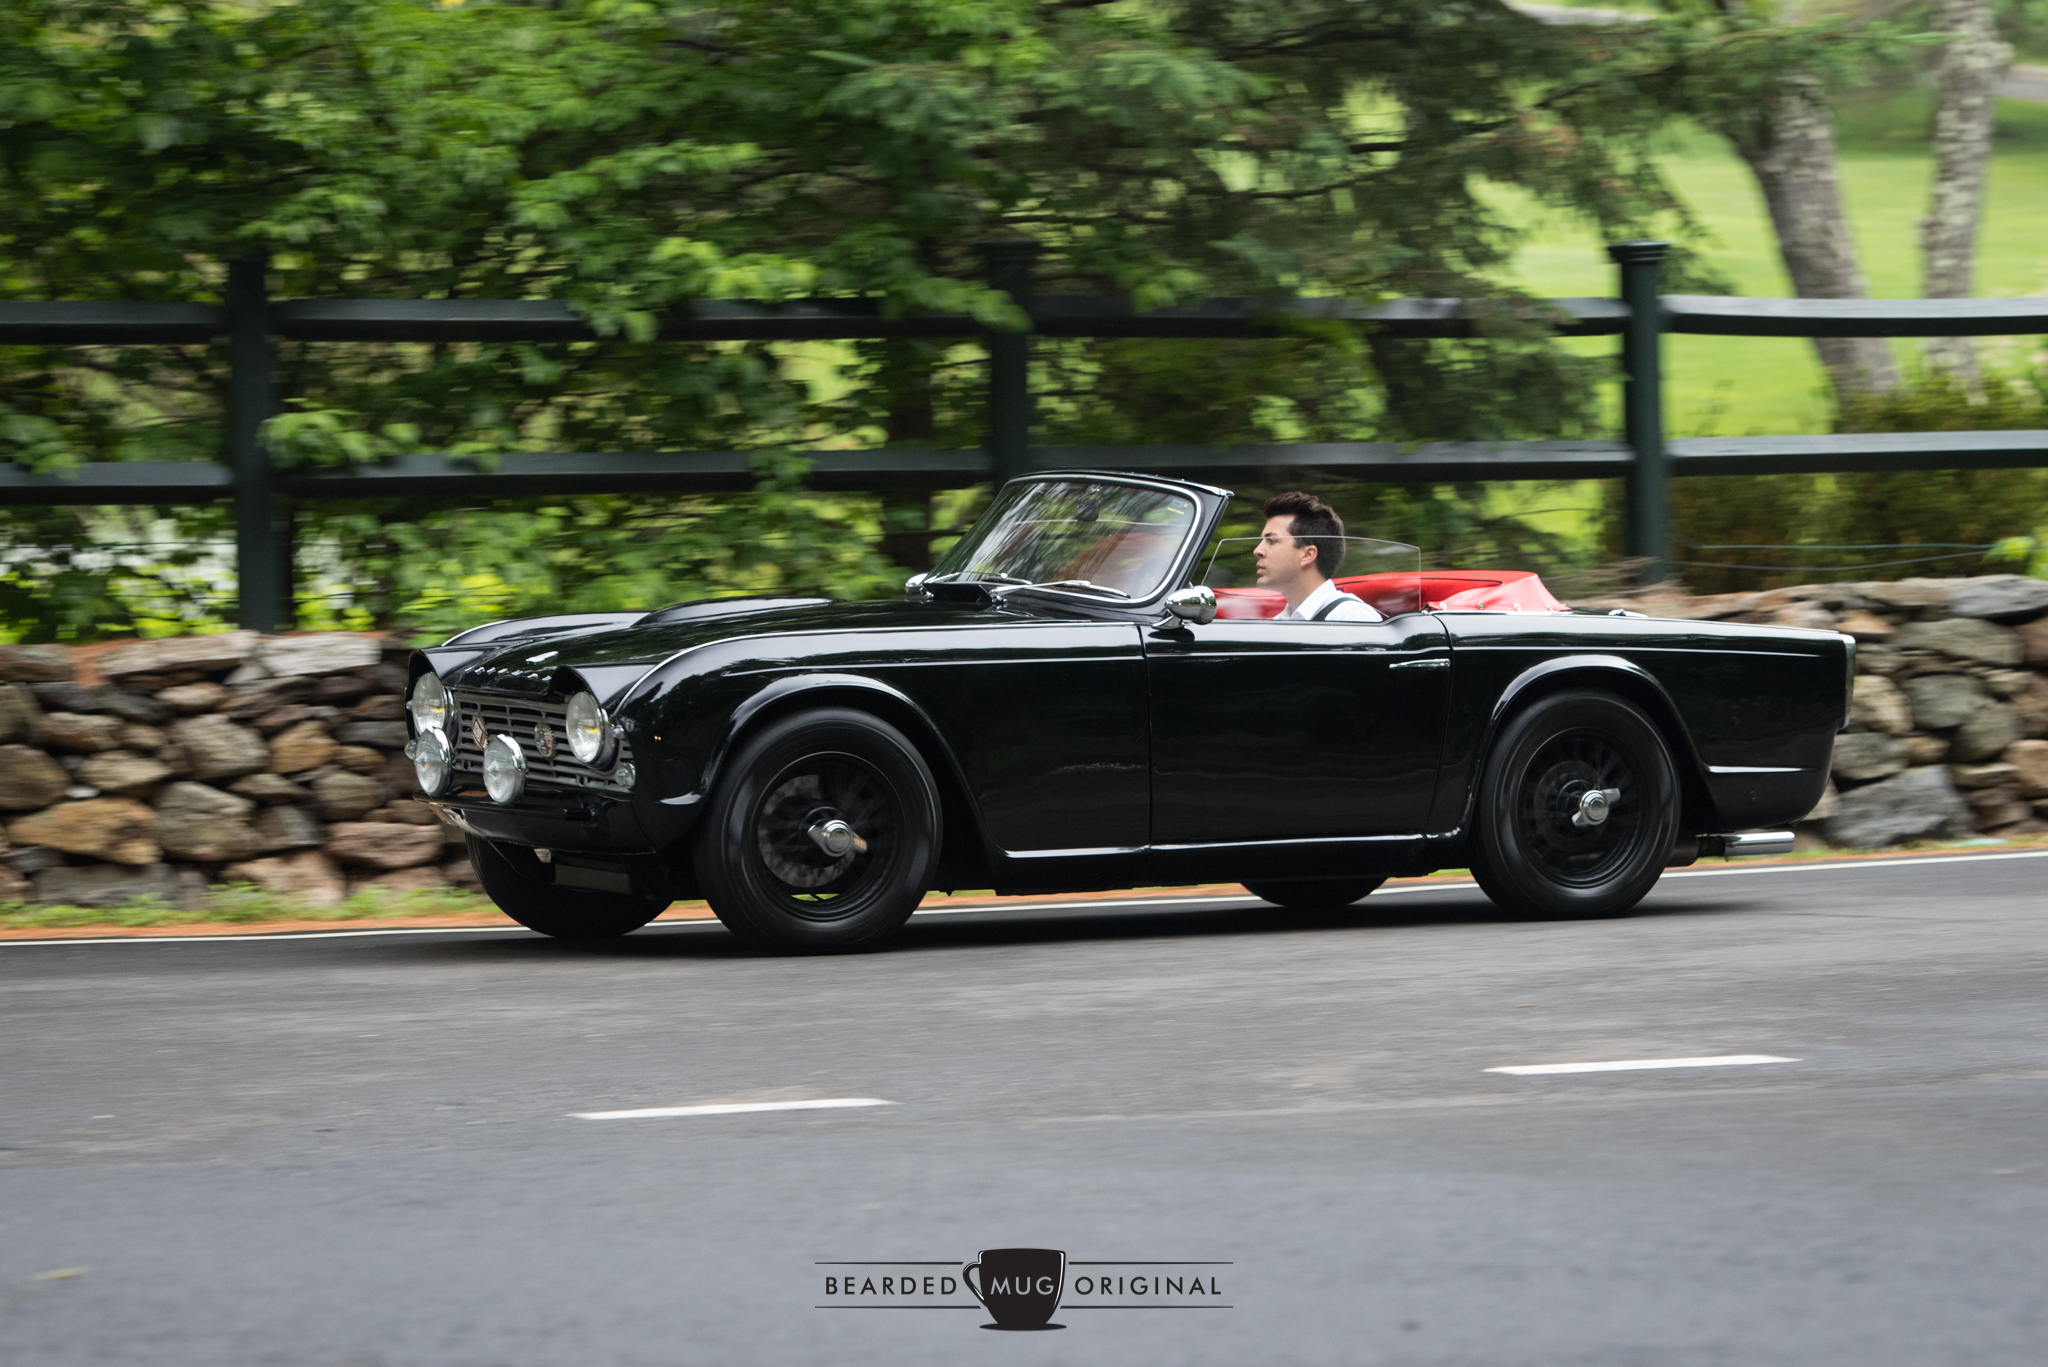 The TR4 of Thomas Hale was my tour companion for the final legs, its carbureted engine struggling to keep up with the fuel-injected fury that was found under the hood of my rental Versa Note.